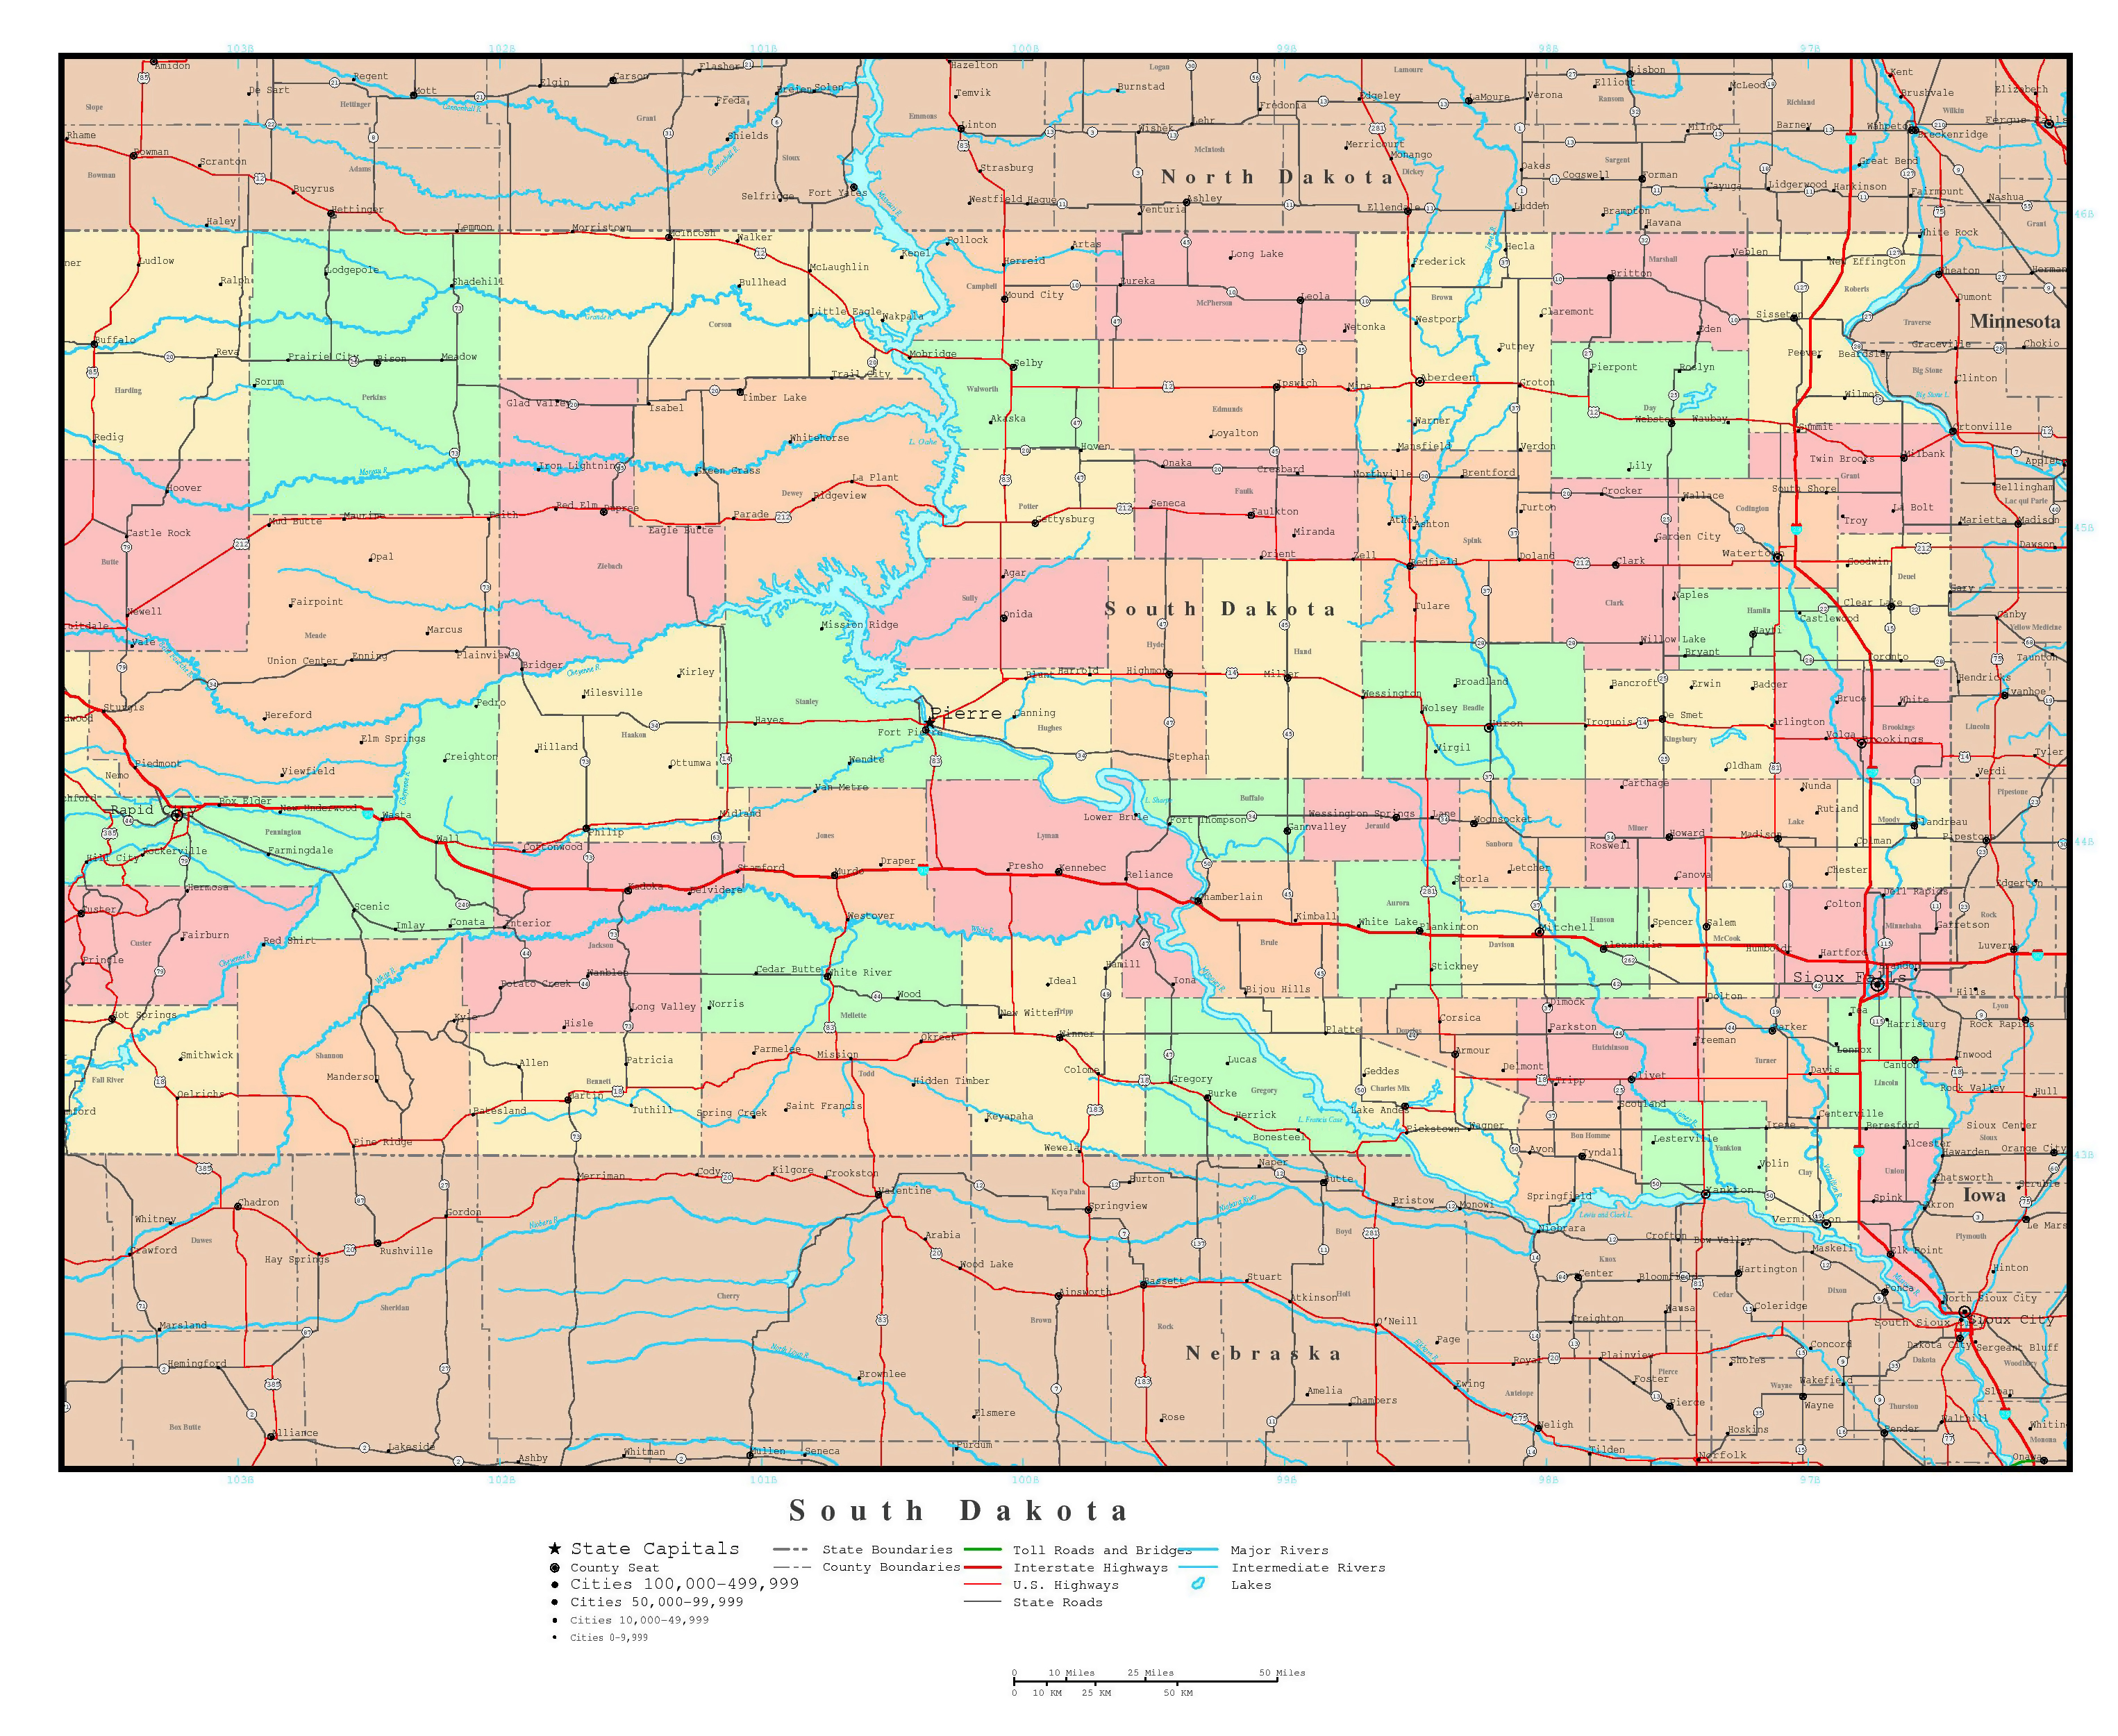 Large Detailed Administrative Map Of South Dakota State With Roads - Map of usa with states and capitals and major cities